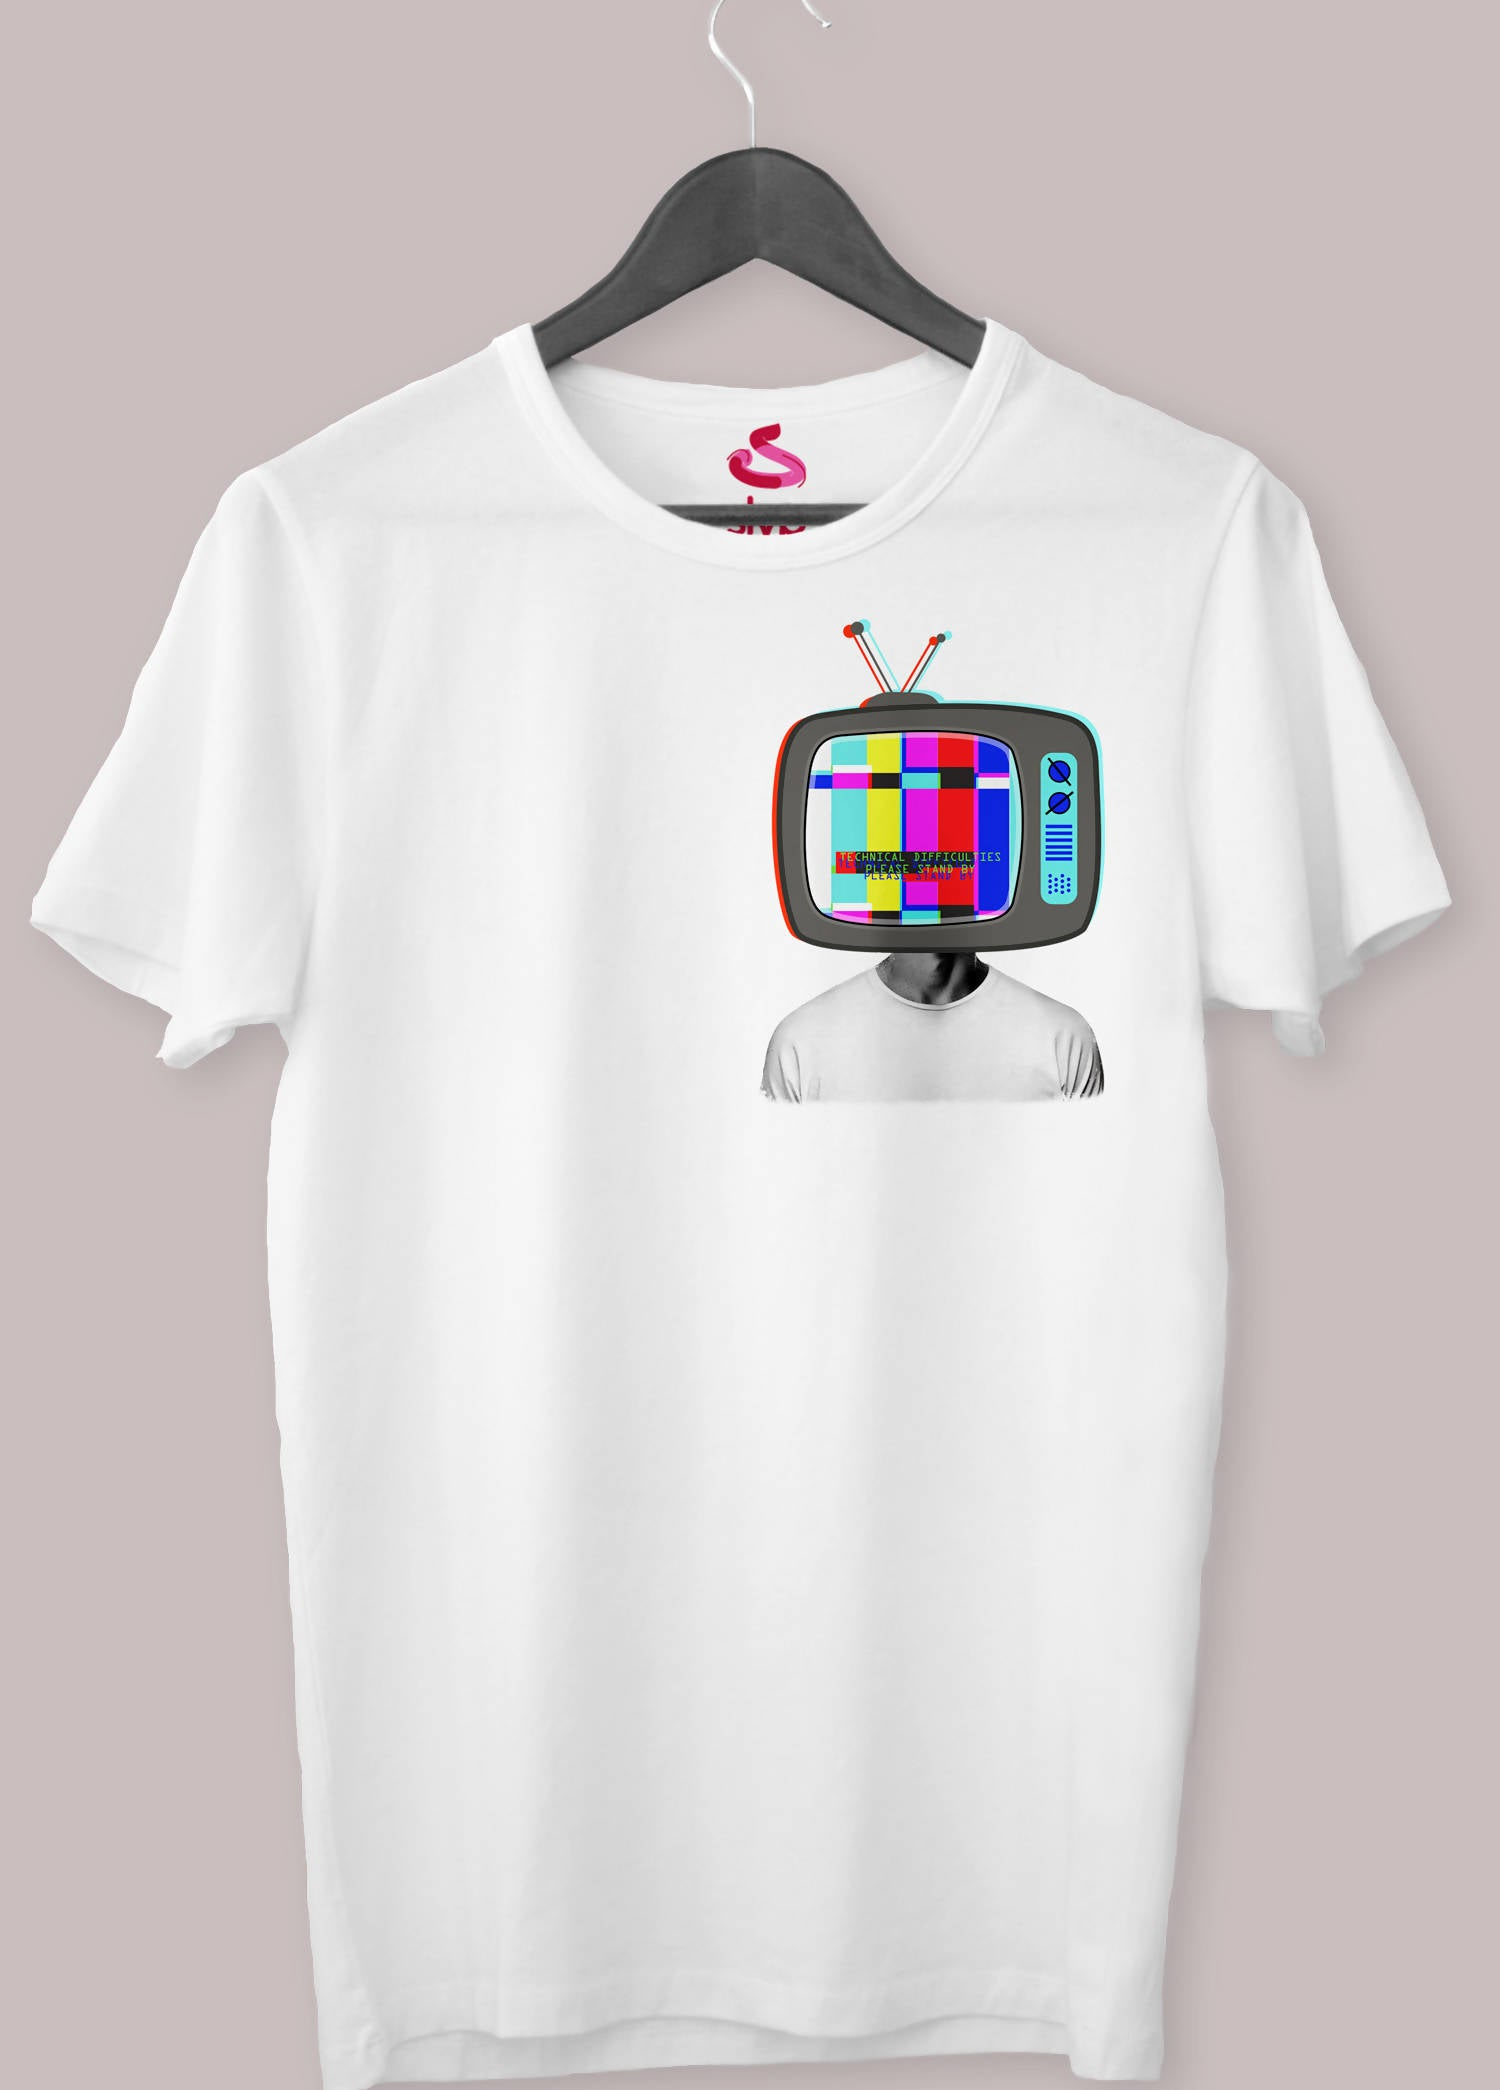 Disconnected T-shirt